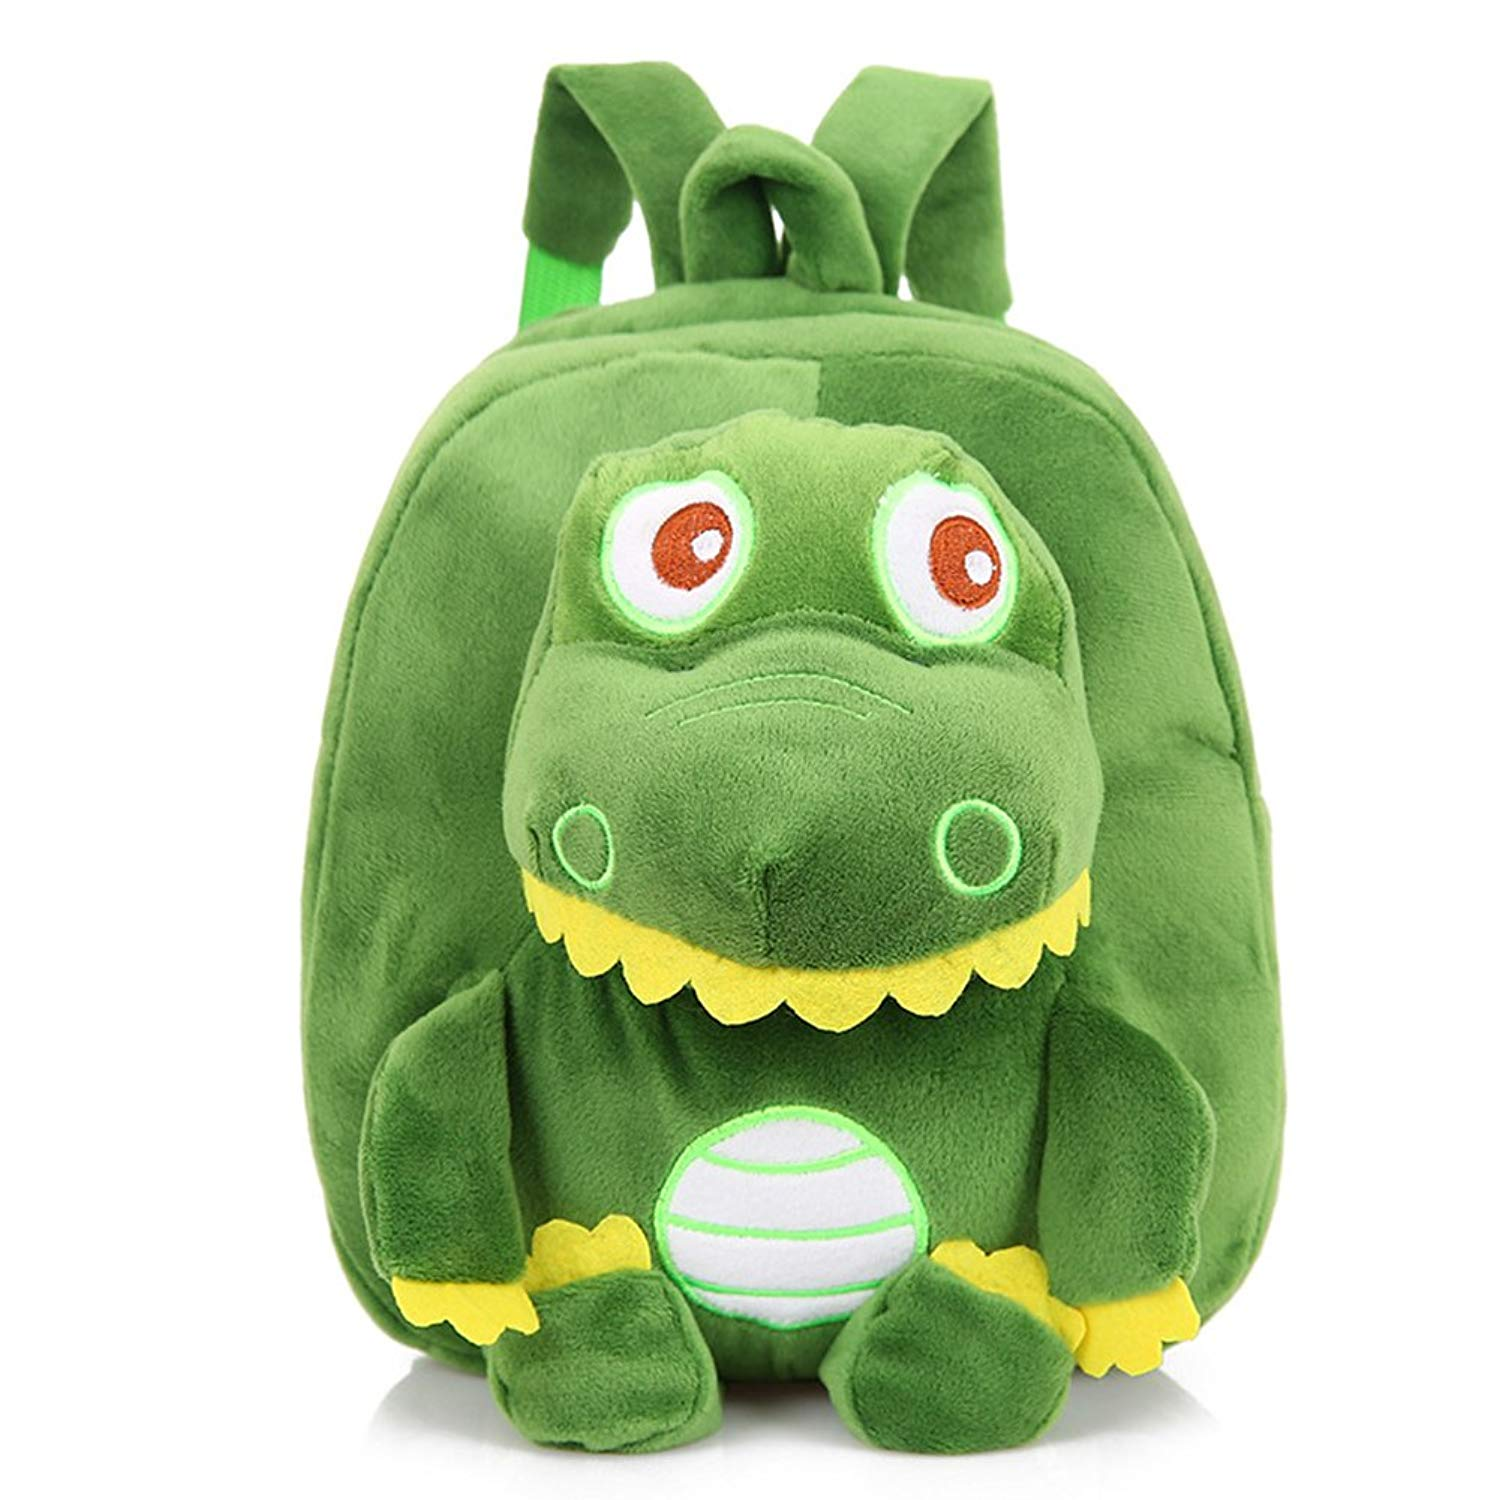 94d2d46b08 Get Quotations · Kids Dinosaur Backpack Preschool Toddler Backpack 3D Cute  Animal Children Backpacks for Boys Girls